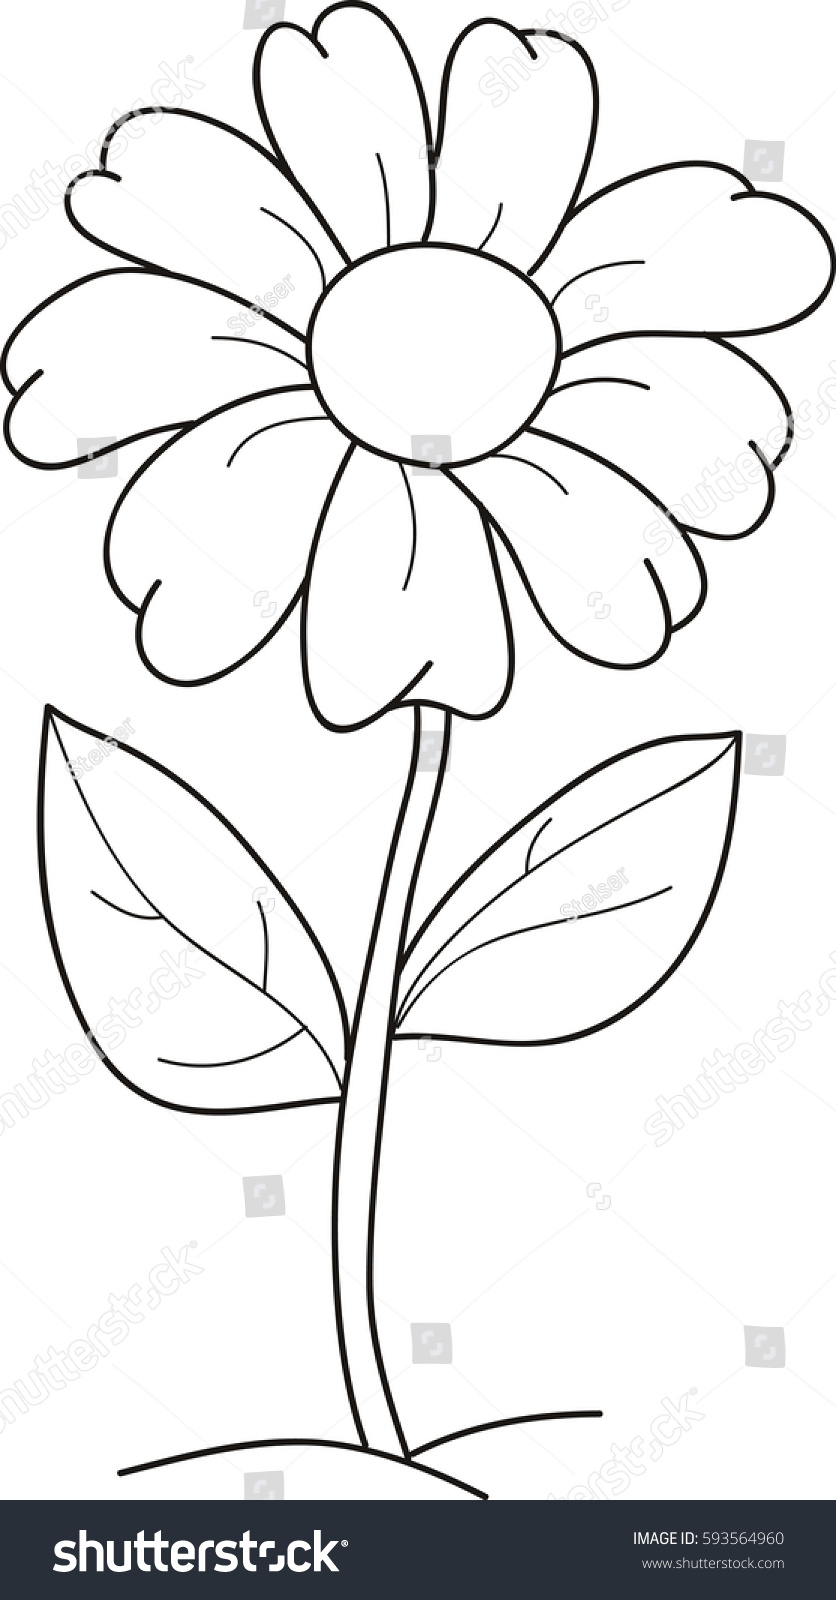 Cartoon Vector Illustration Flower Coloring Book Stock Vector Royalty Free 5935649 Easy Flower Drawings Printable Flower Coloring Pages Flower Coloring Pages